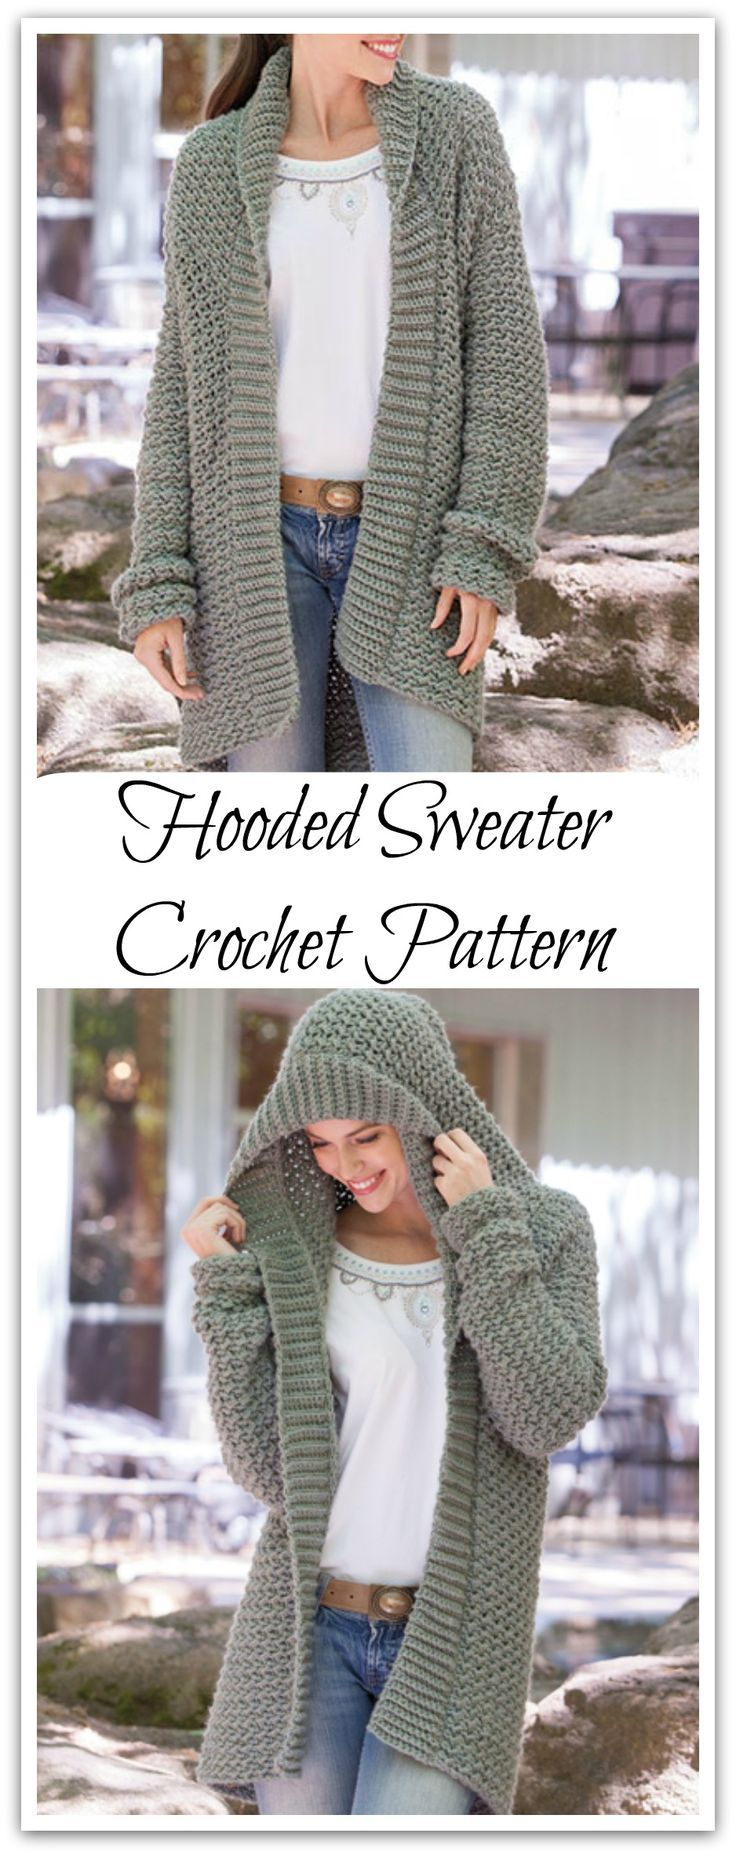 Snuggle in the textured fabric of this casual sweater with an oversized hood! Perfect for all your weekend activities. Instant PDF download or print to order. #ad #affiliate #crochet #pattern